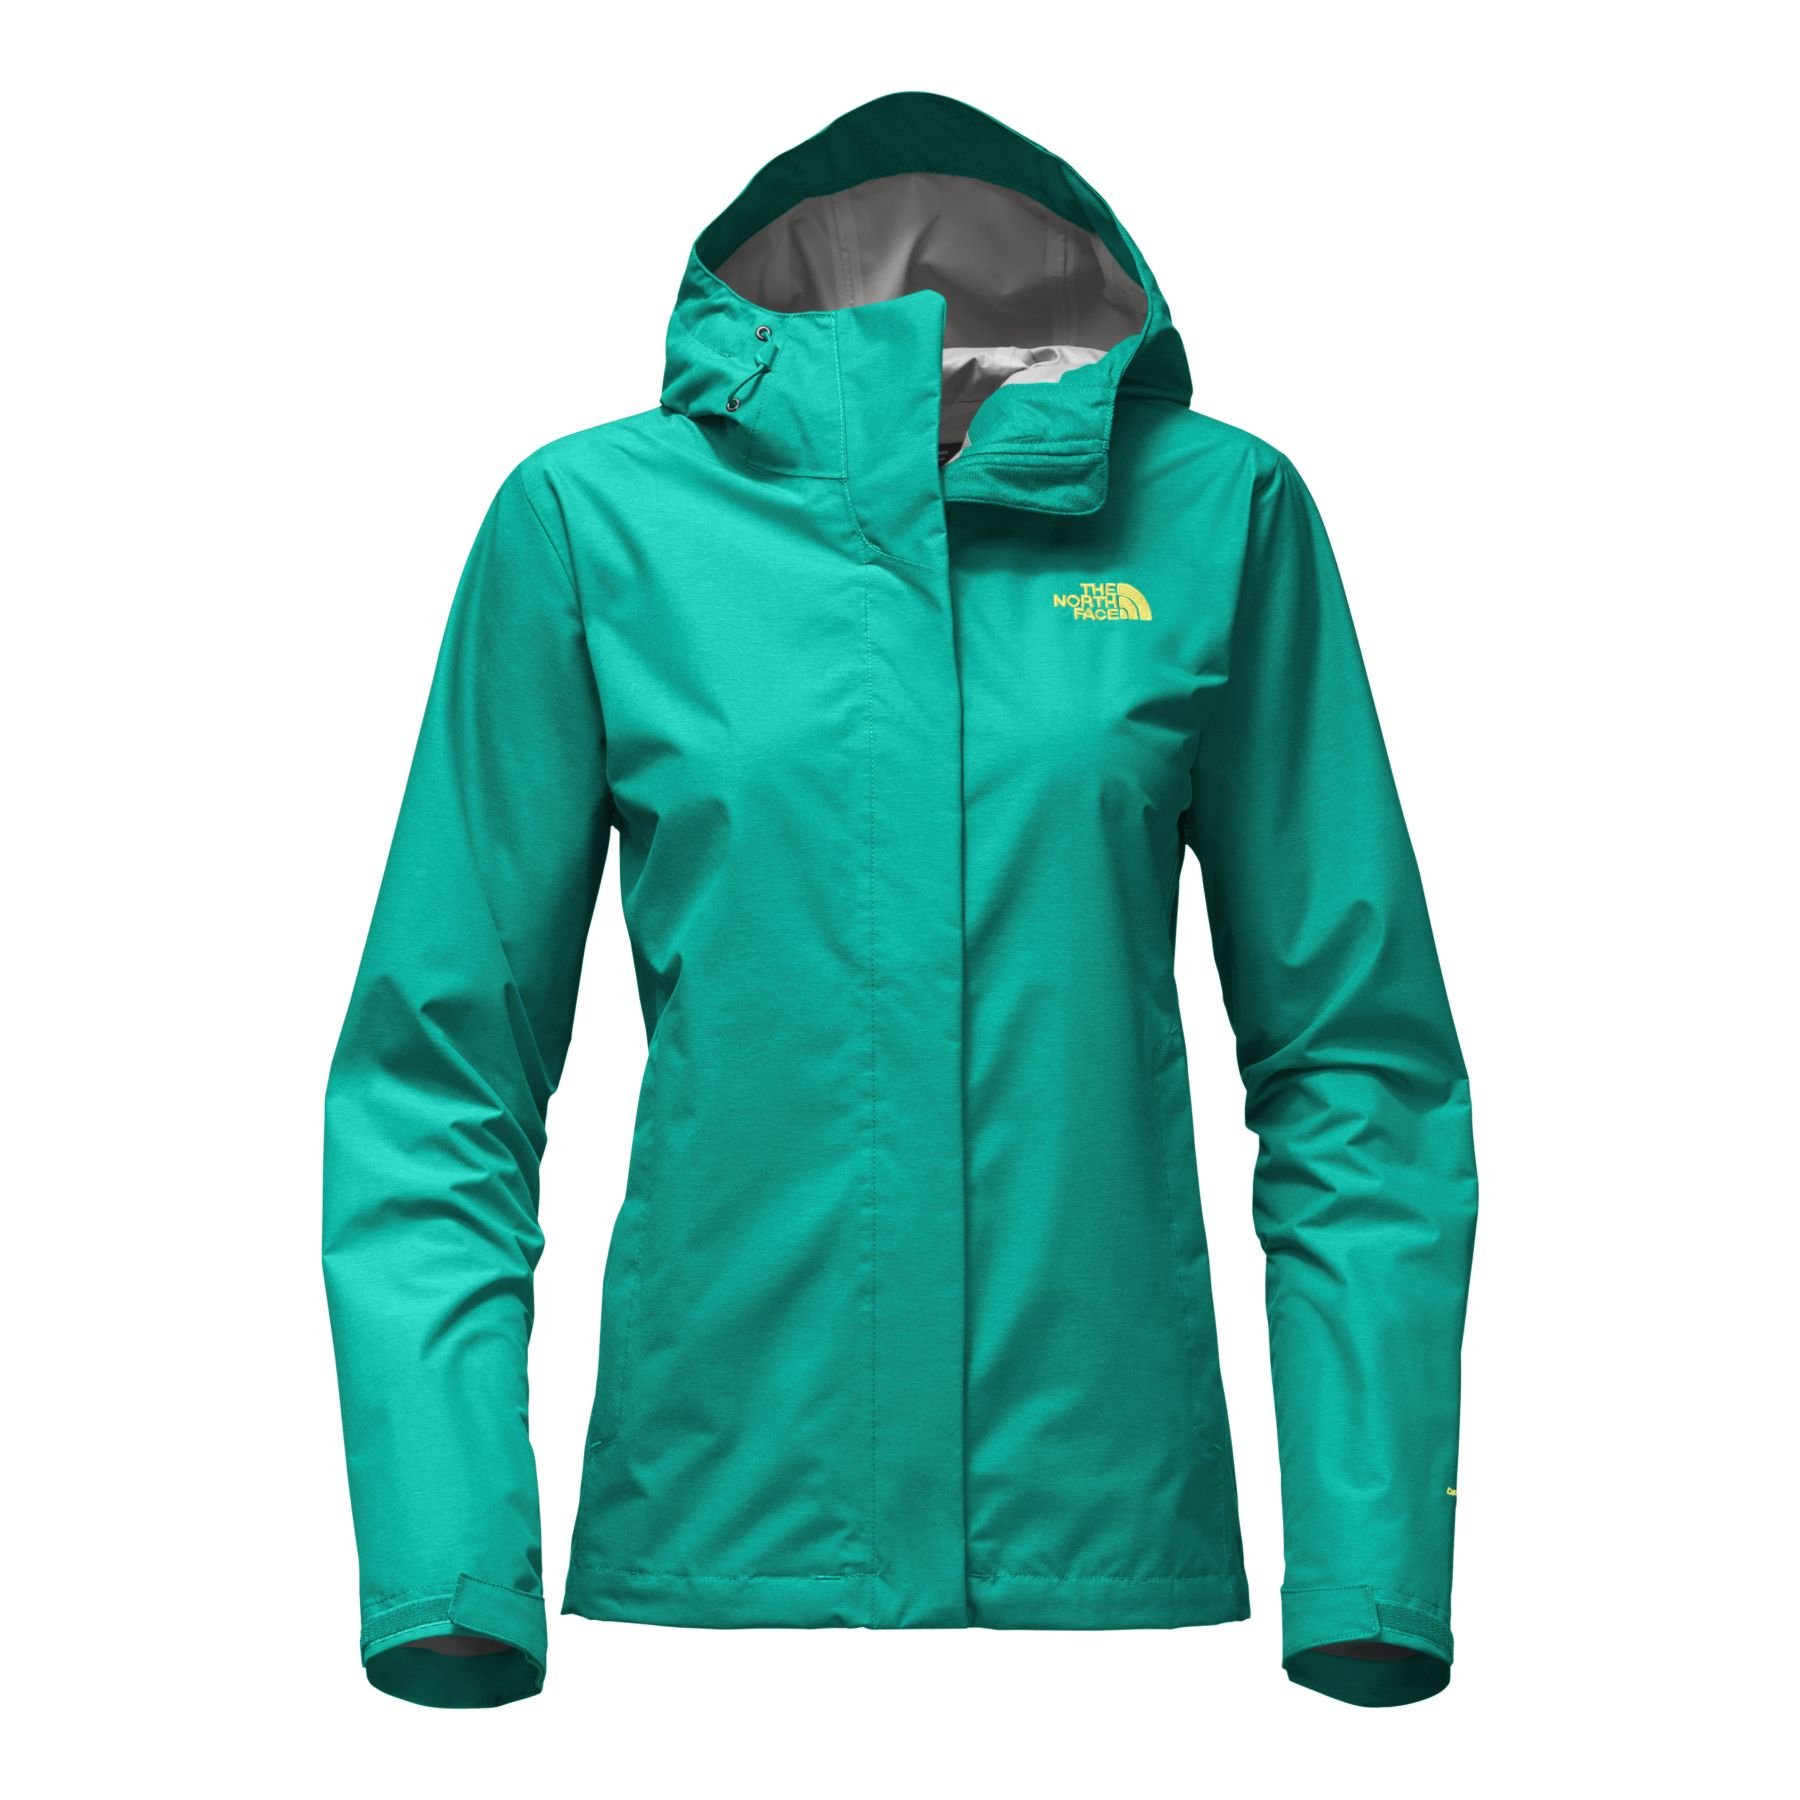 The North Face Women's Venture 2 Jacket Pool Green Heather - 3XL